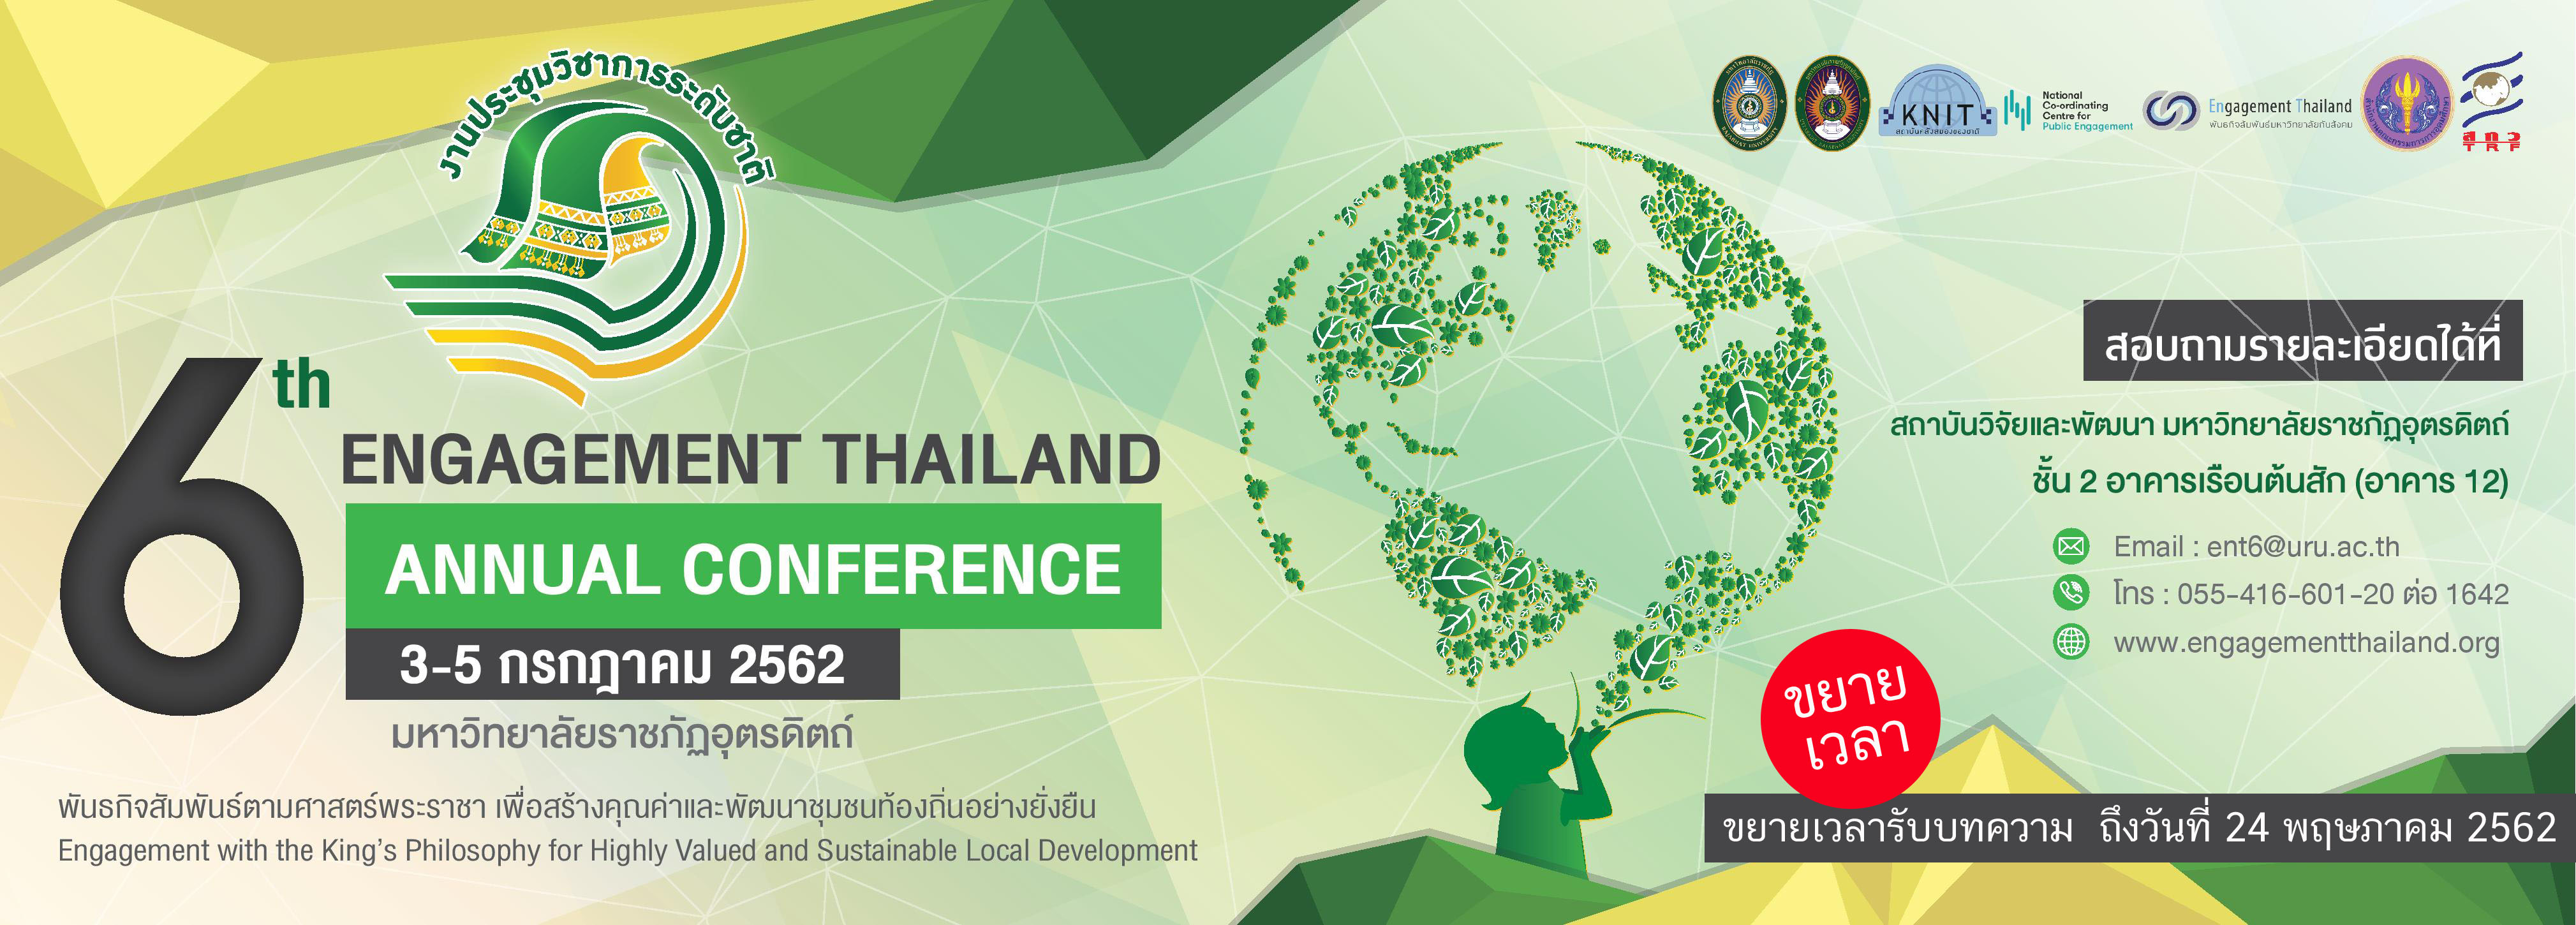 The 6th Engagement Thailand Annual Conference